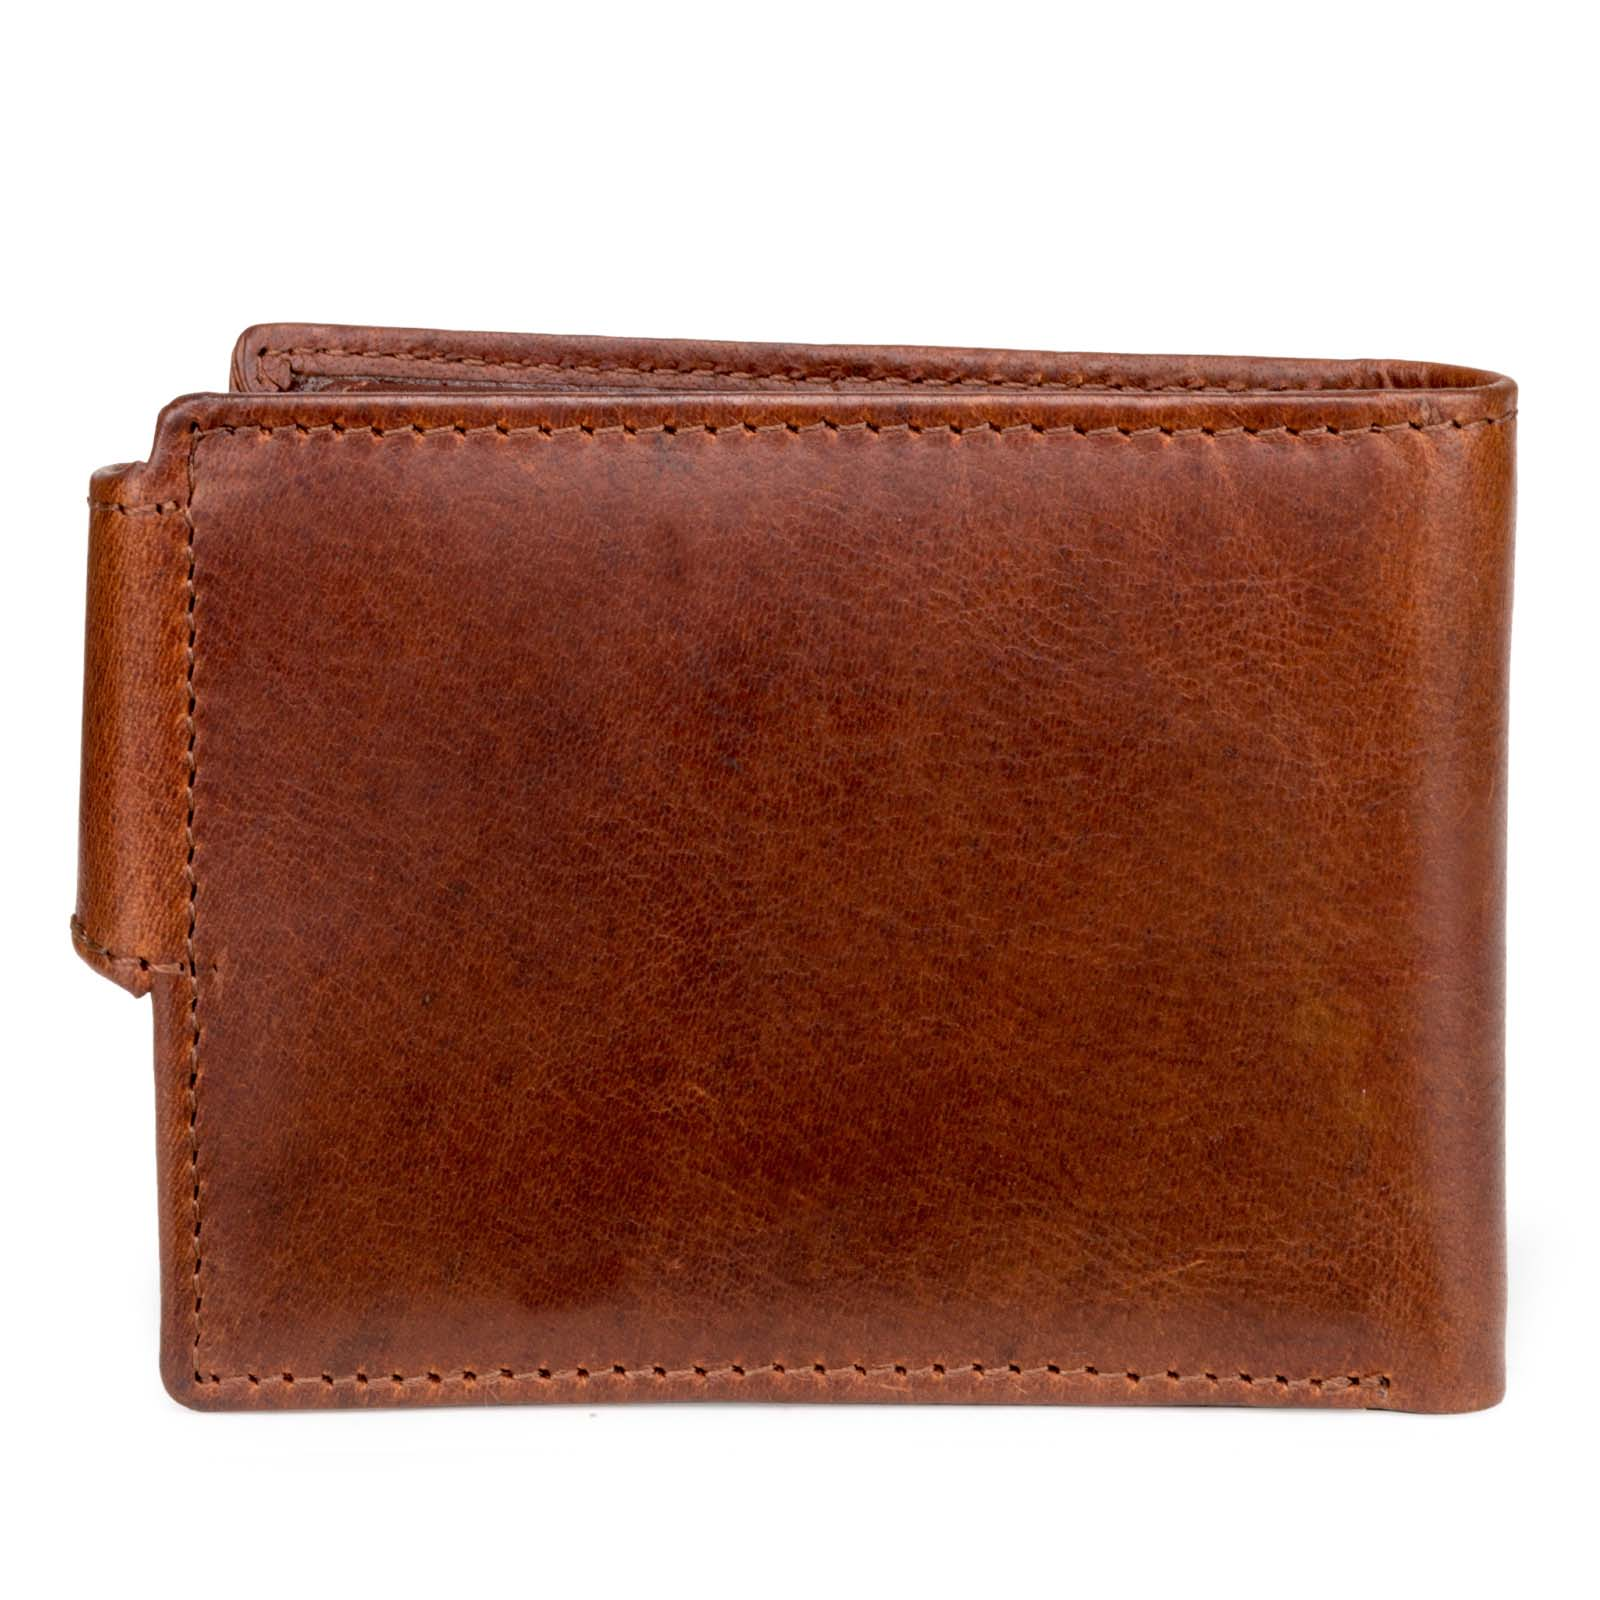 Brown Textured Leather Mens Wallet with Flap Button Closure